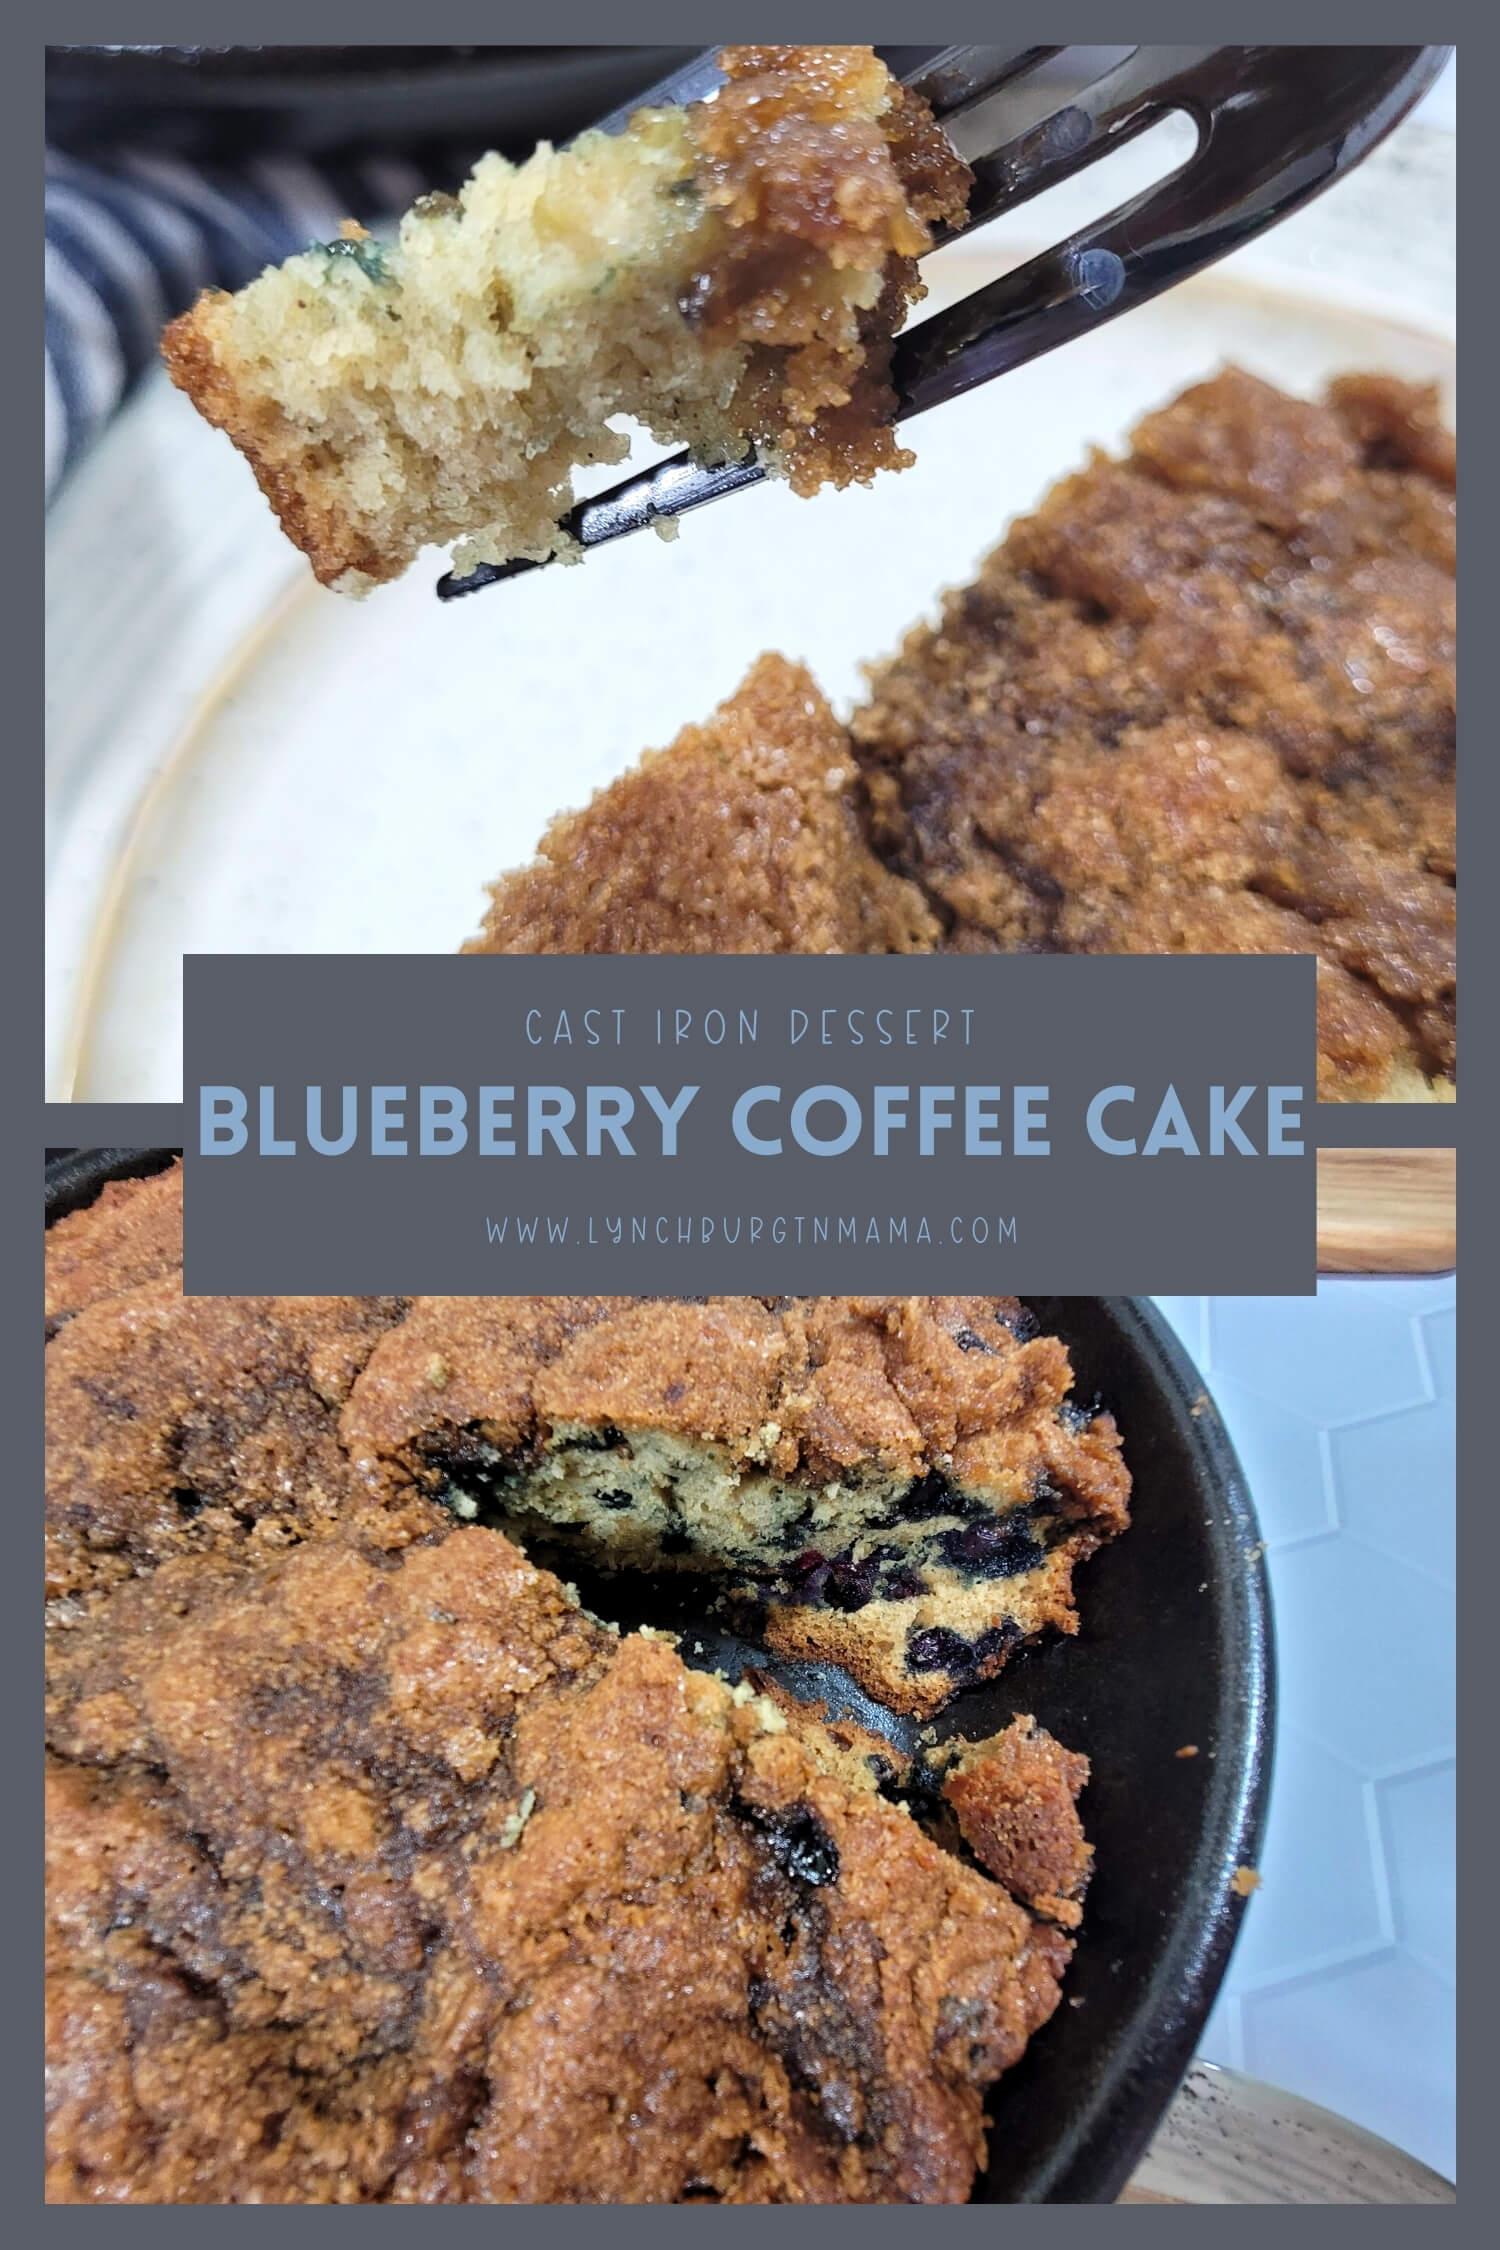 Cast Iron Blueberry Coffee Cake is a warm, comforting dessert that is ready to eat out of the oven. Top with ice cream for dessert or enjoy with your favorite beverage for breakfast.